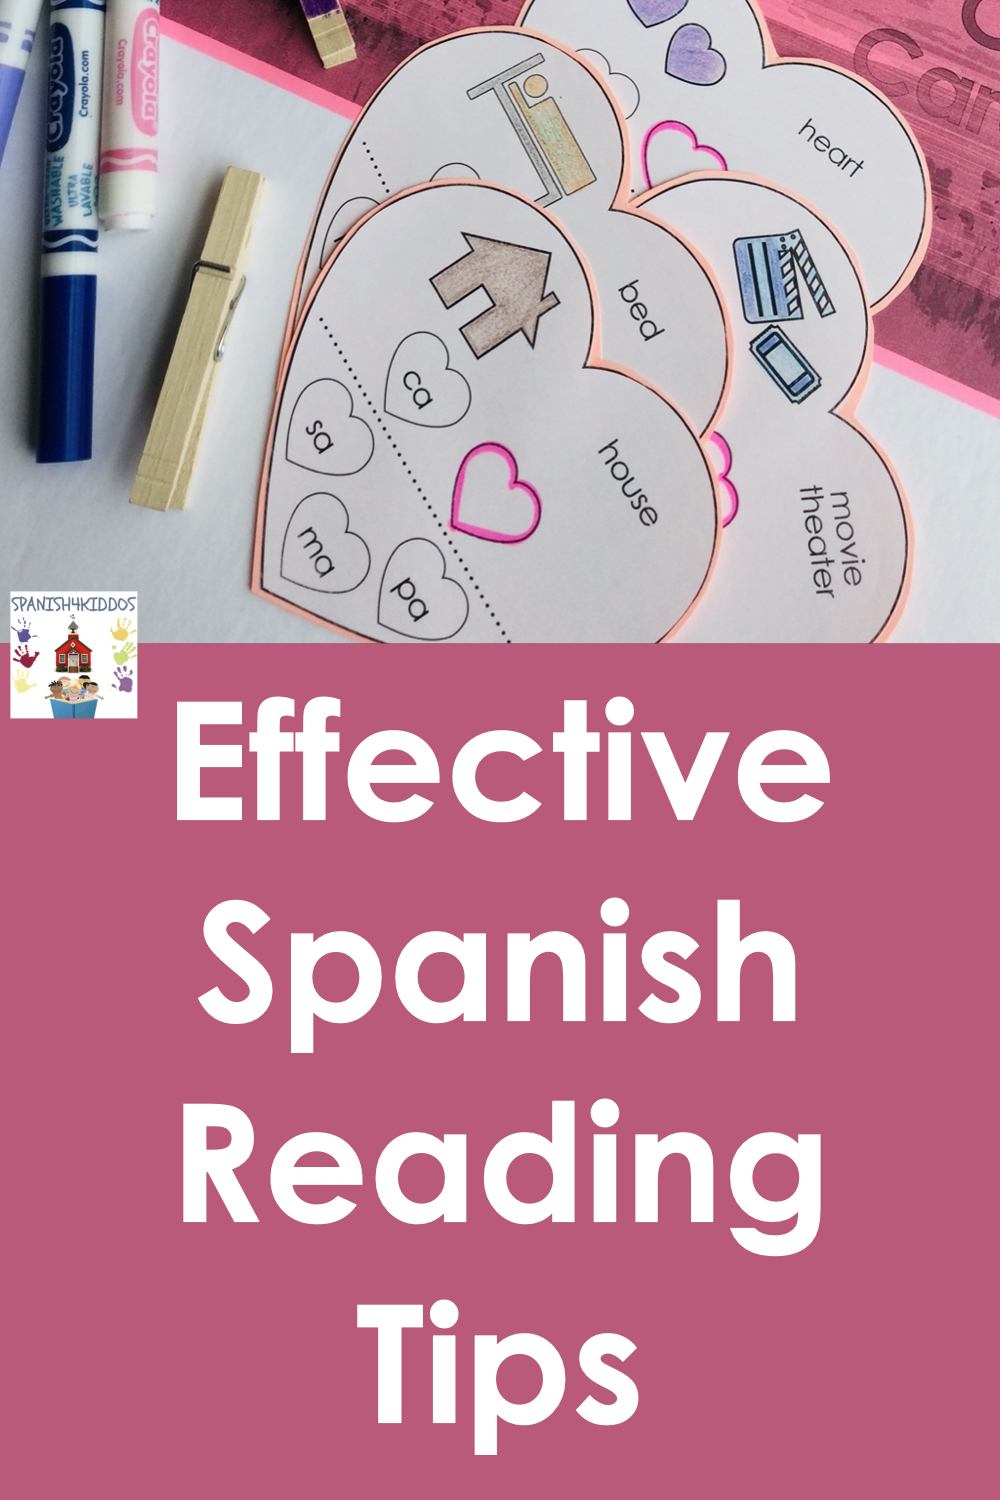 Spanish reading tips